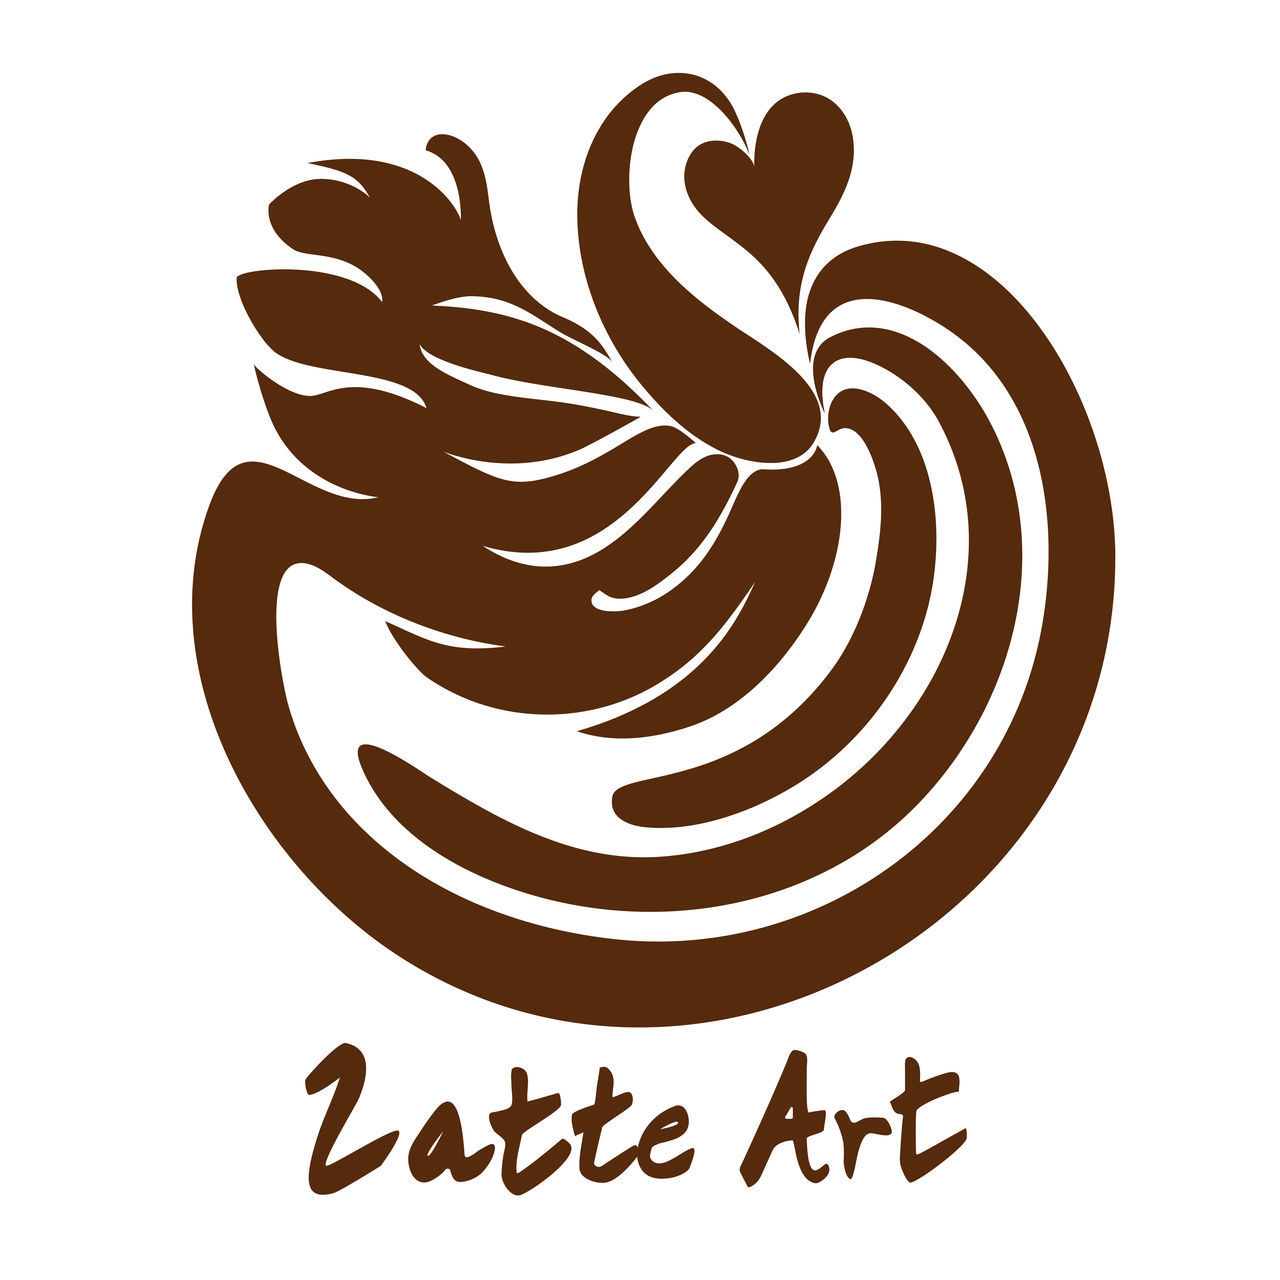 Latte Art Coffee Logo Icon Symbol Design America Art Beige Beverage Cafe Caffeine Caramel Chocolate Cinamon Coffee Cream Cute Design Dessert Freshness From My Point Of View Froth Italian Latte Milk Shop Smooth Tasting